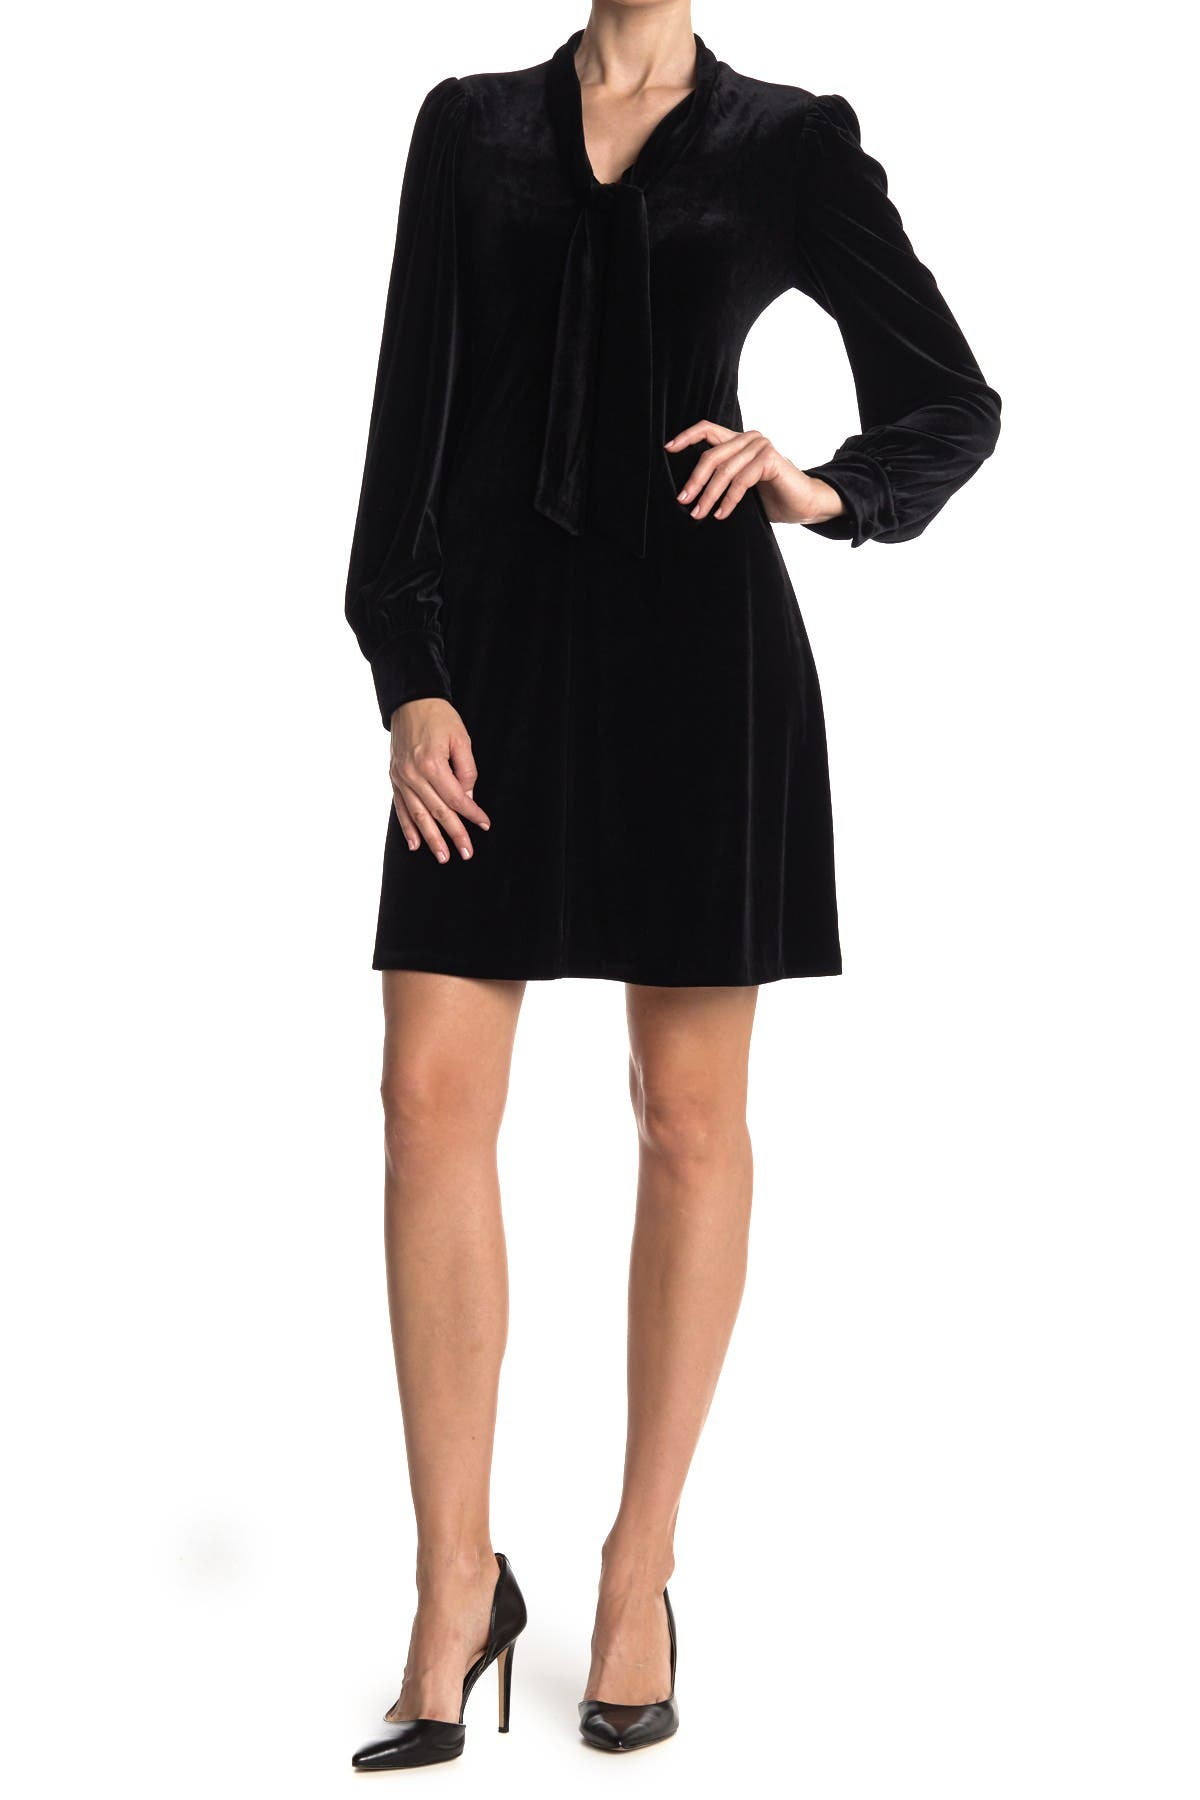 Image of Calvin Klein Velvet Tie Neck Long Sleeve Shift Dress